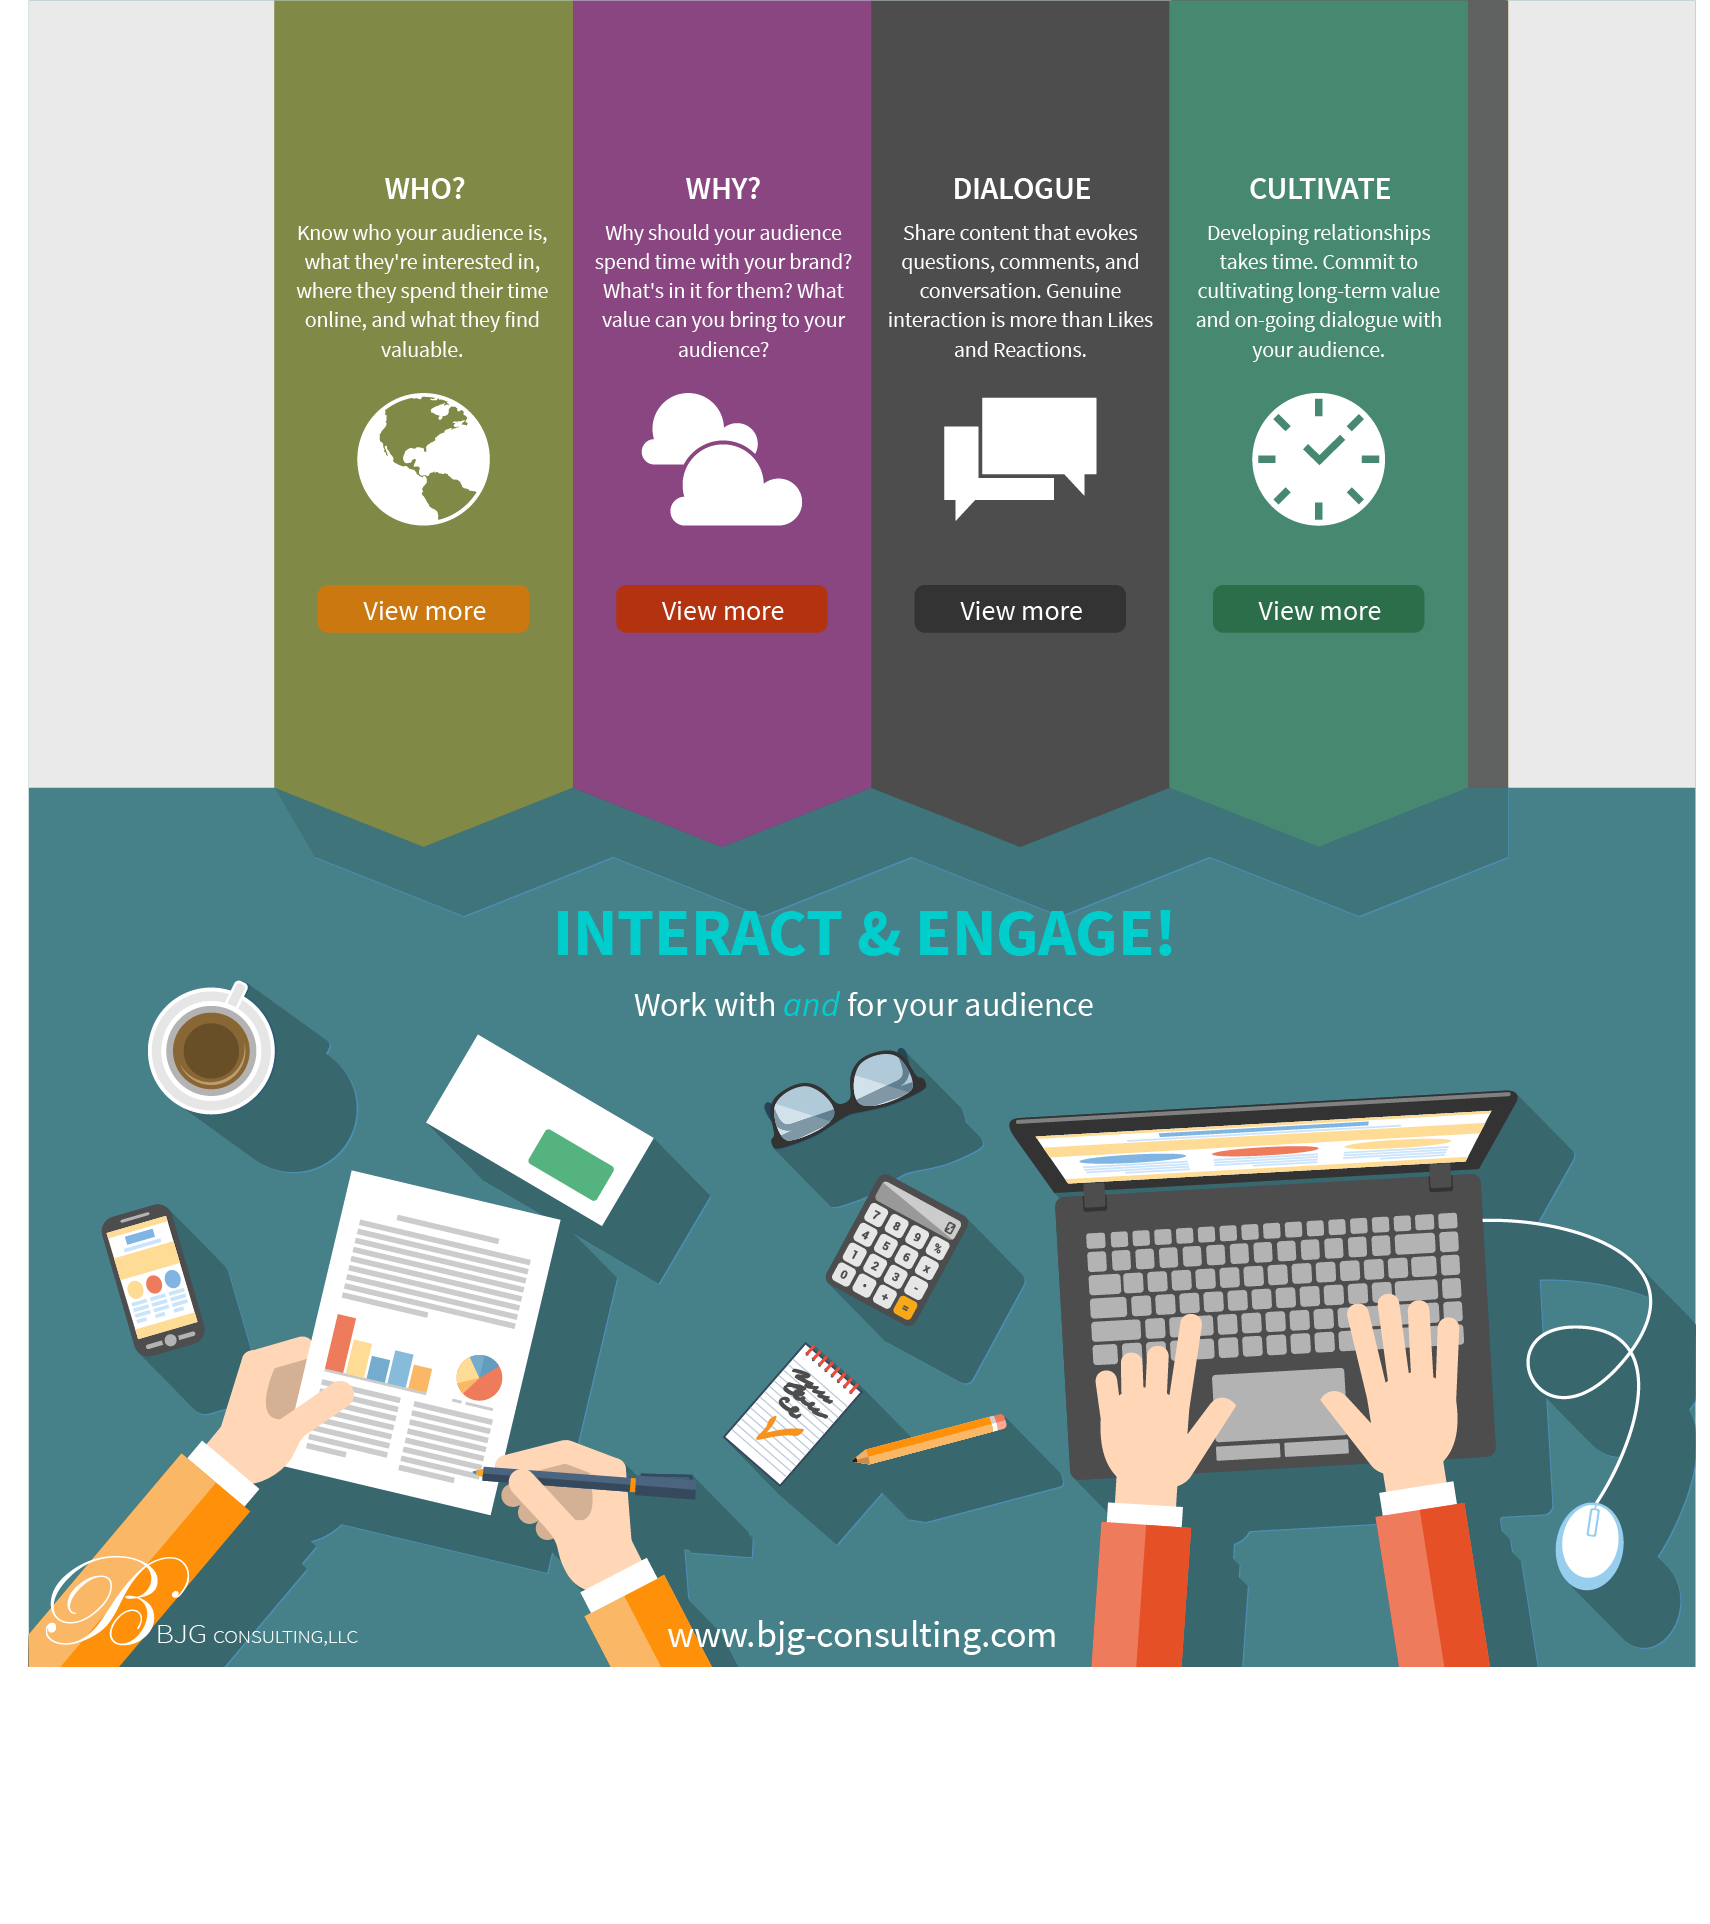 Interact and Engage with your audience to work with AND for them infographic